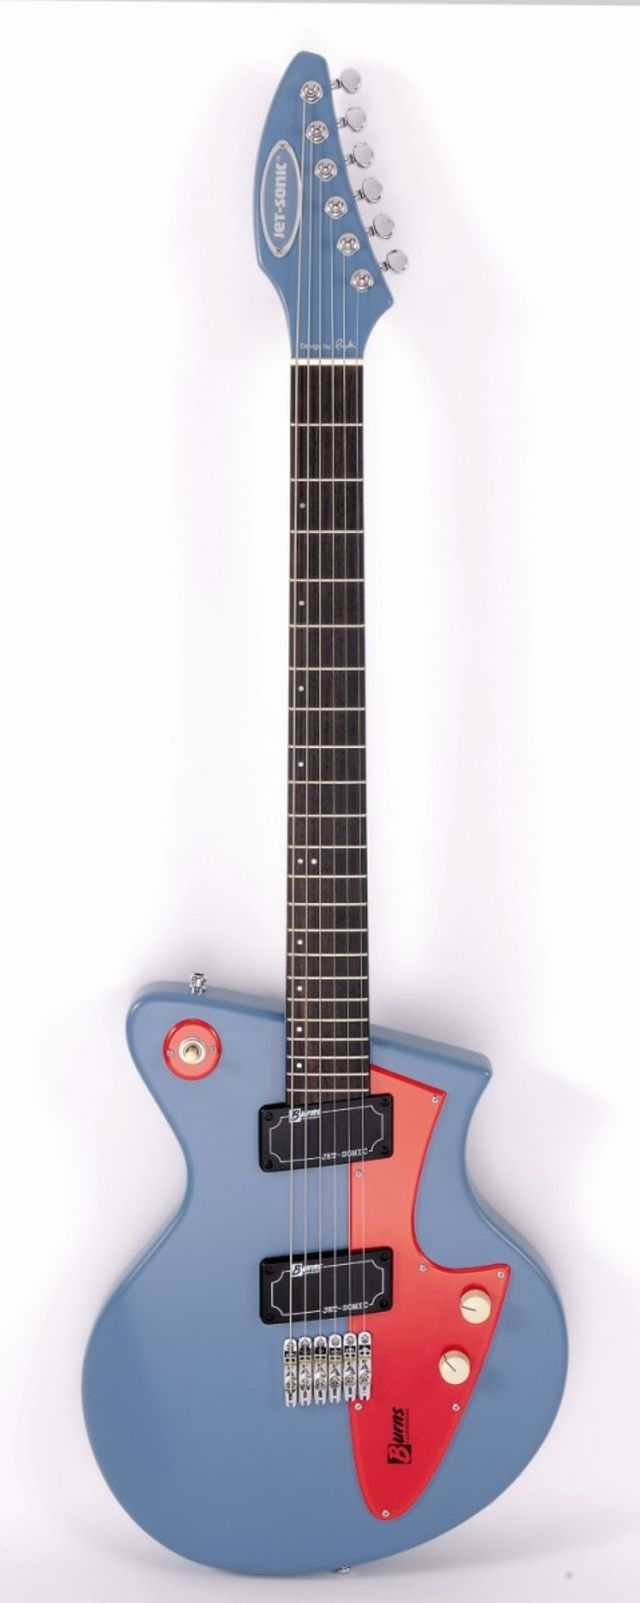 Blue finish option of the Burns Jet-Sonic